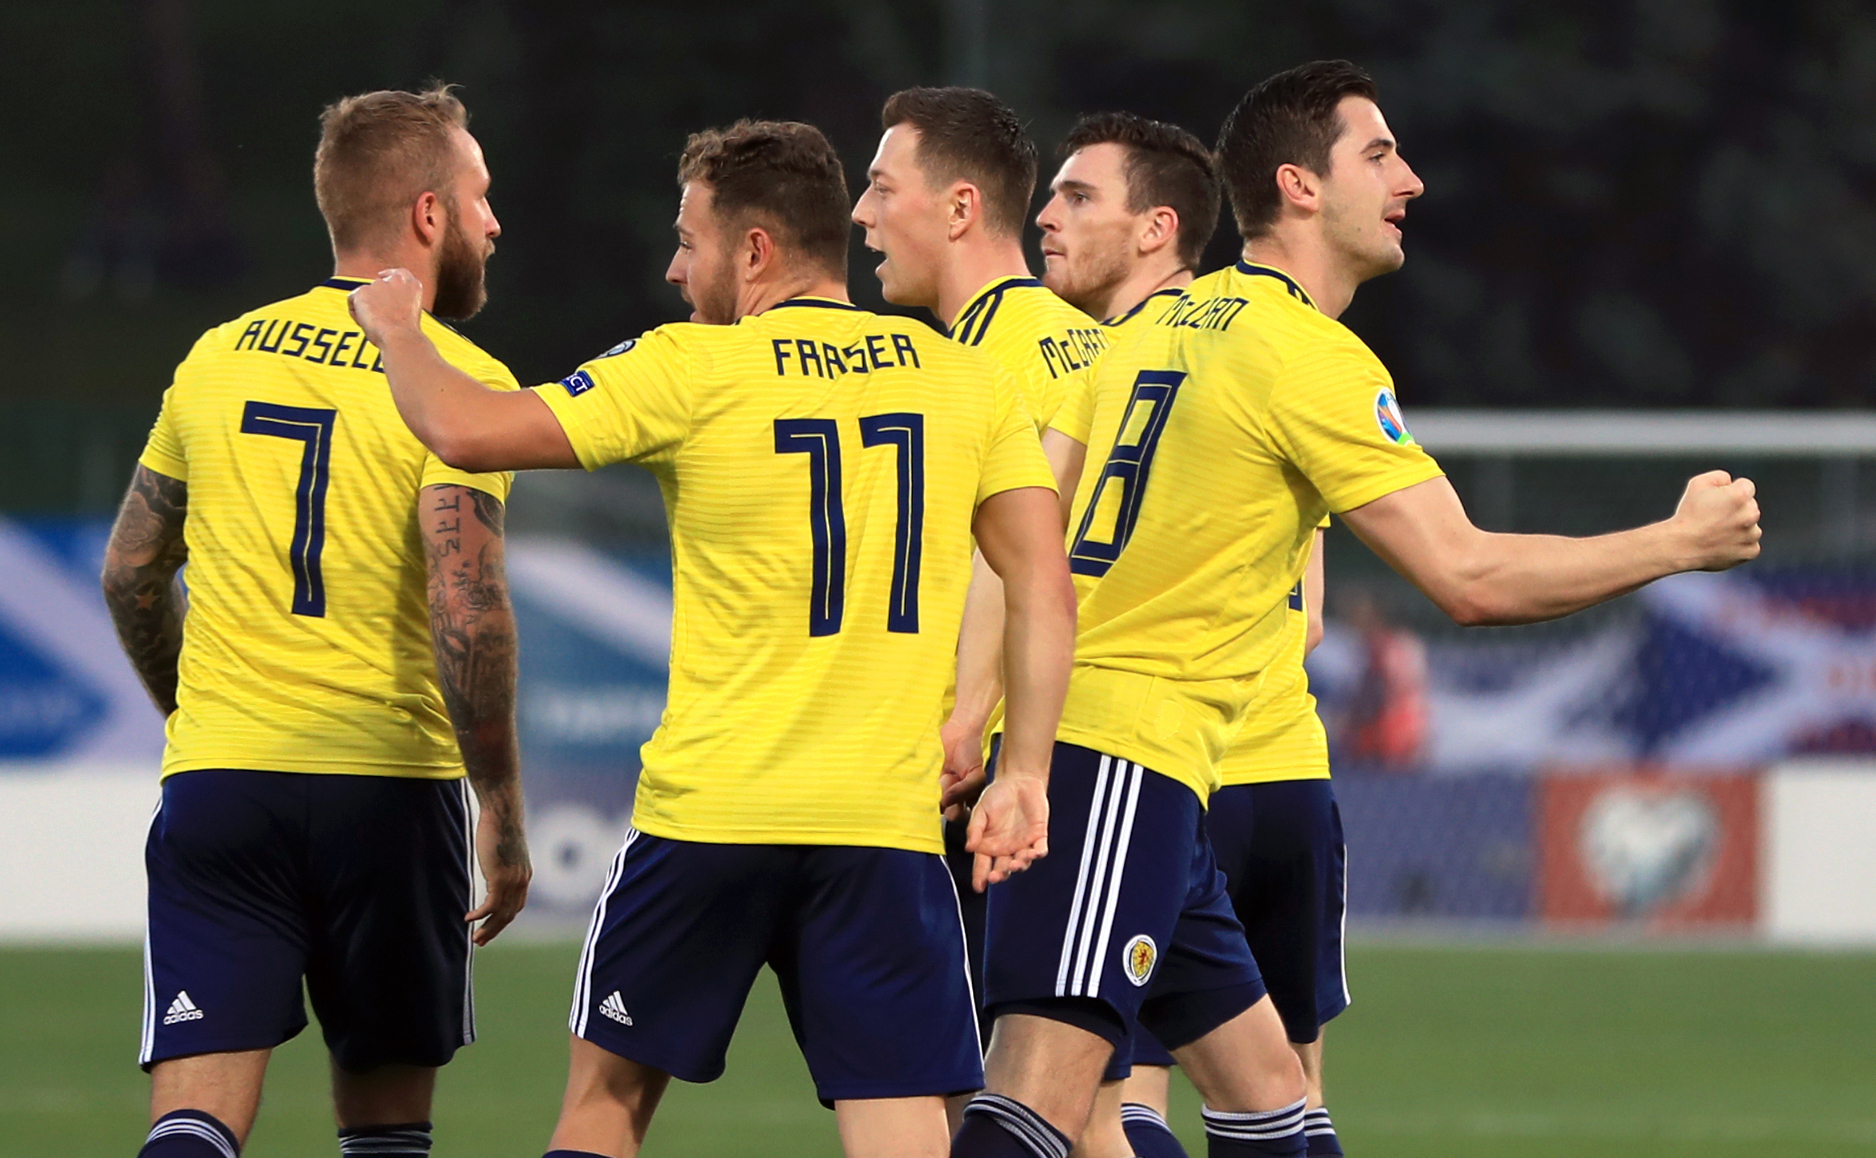 Scotland's Kenny McLean (far right) celebrates scoring his side's first goal of the game with team-mates during the UEFA Euro 2020 Qualifying, Group I match at the San Marino Stadium, Serravalle. PRESS ASSOCIATION Photo. Picture date: Sunday March